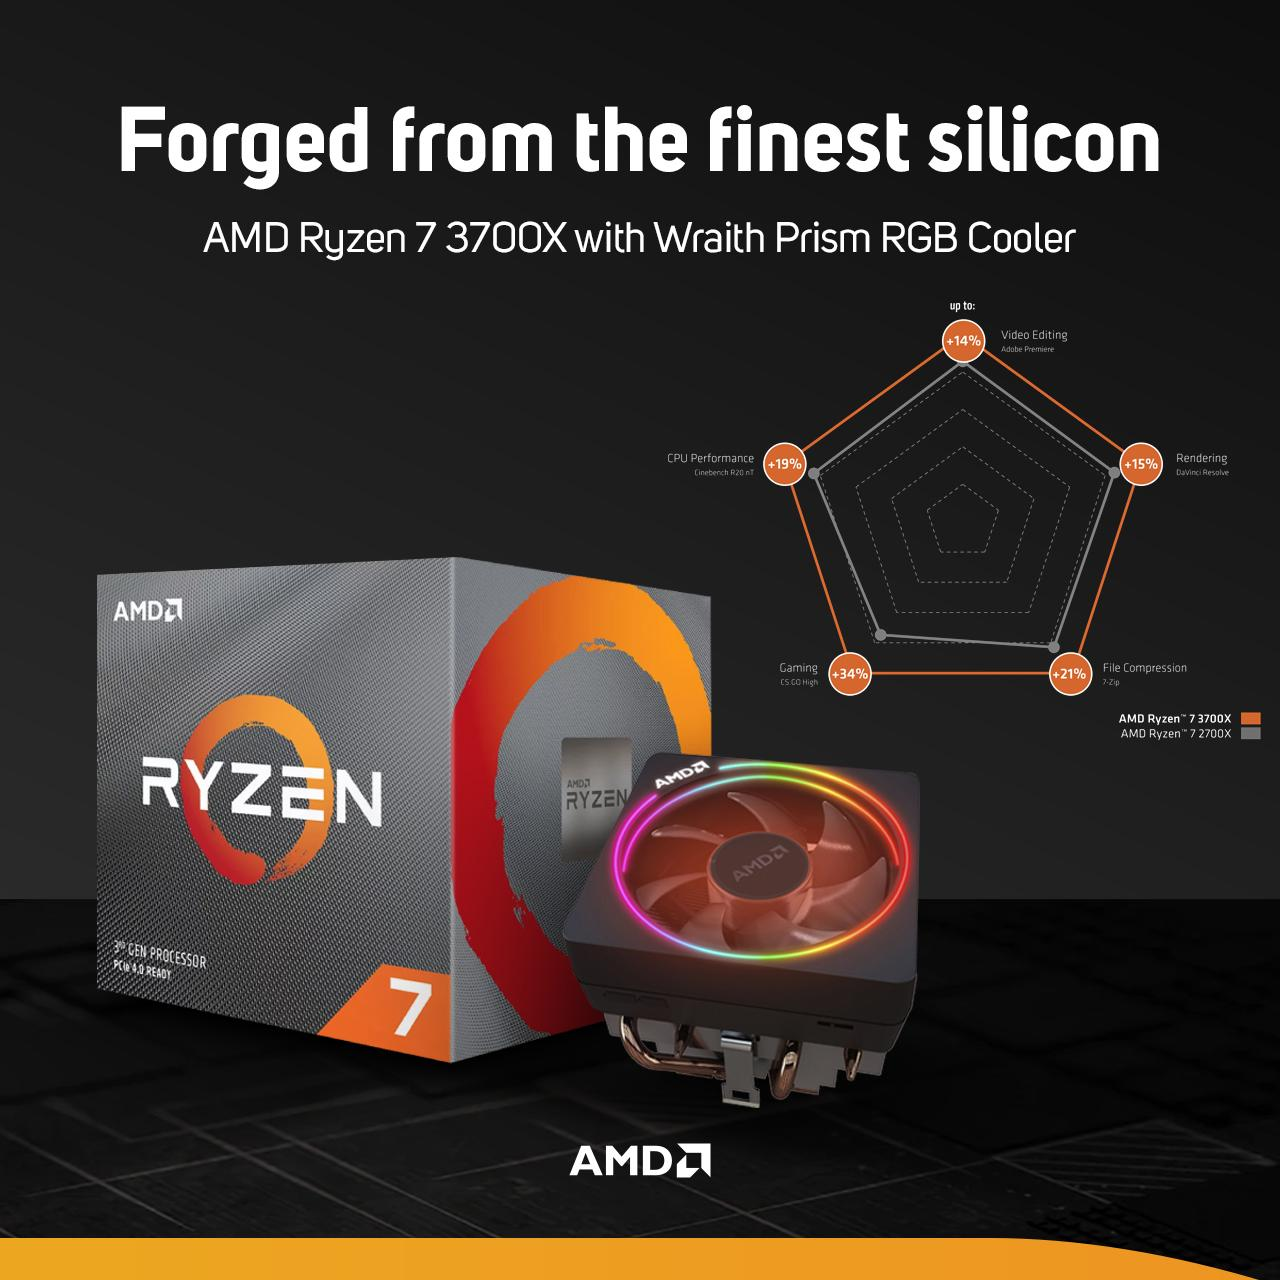 Scan Computers On Twitter Amd Ryzen 7 3700x With Wraith Prism Rgb Cooler In Stock Now Plus Get 3 Months Xbox Game Pass For A Limited Time Find Out More Https T Co Ghffwtprik